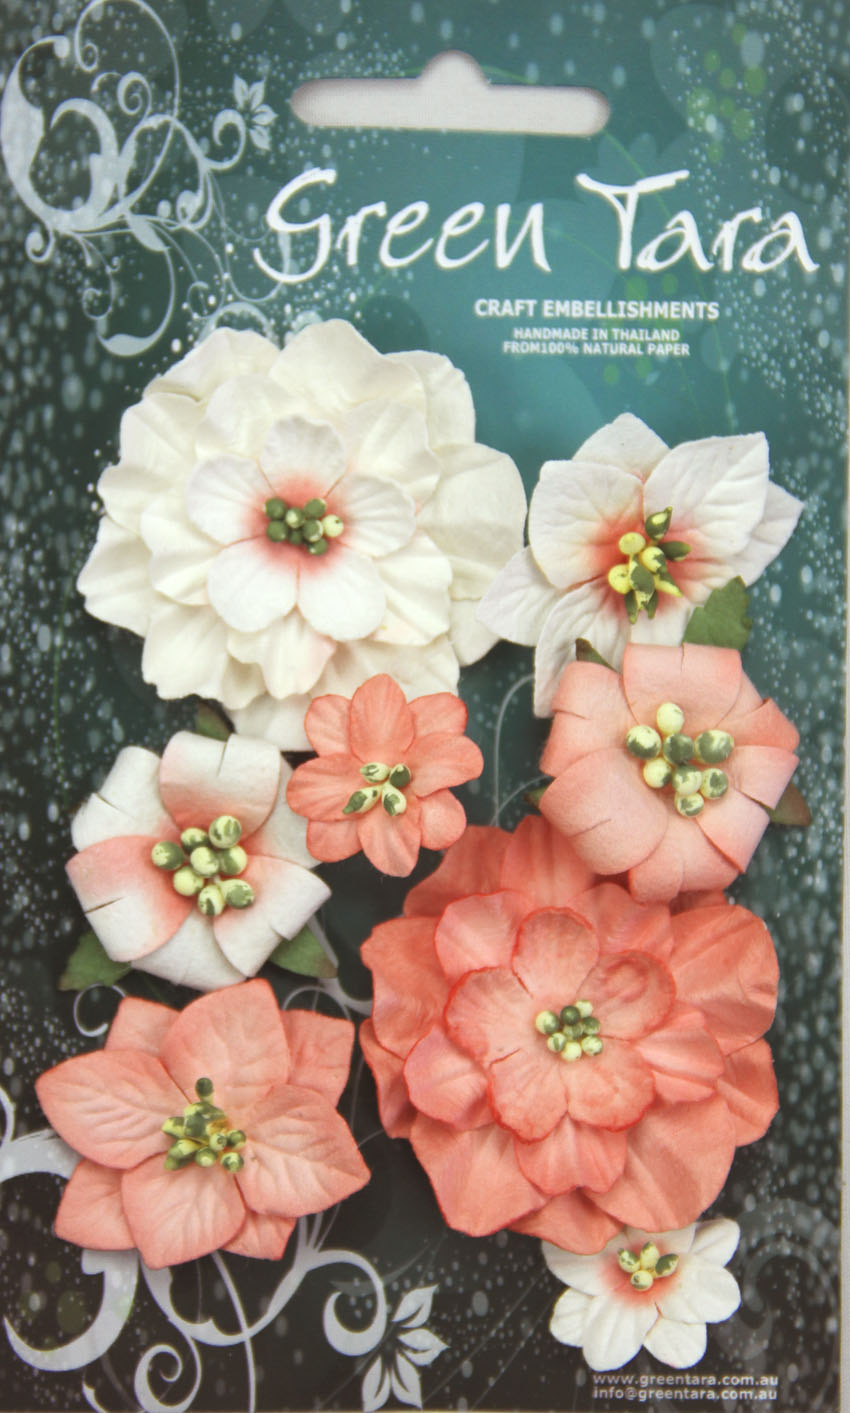 Fantasy Blooms - Pack of 8 Co-ordinated Flowers, PEACH